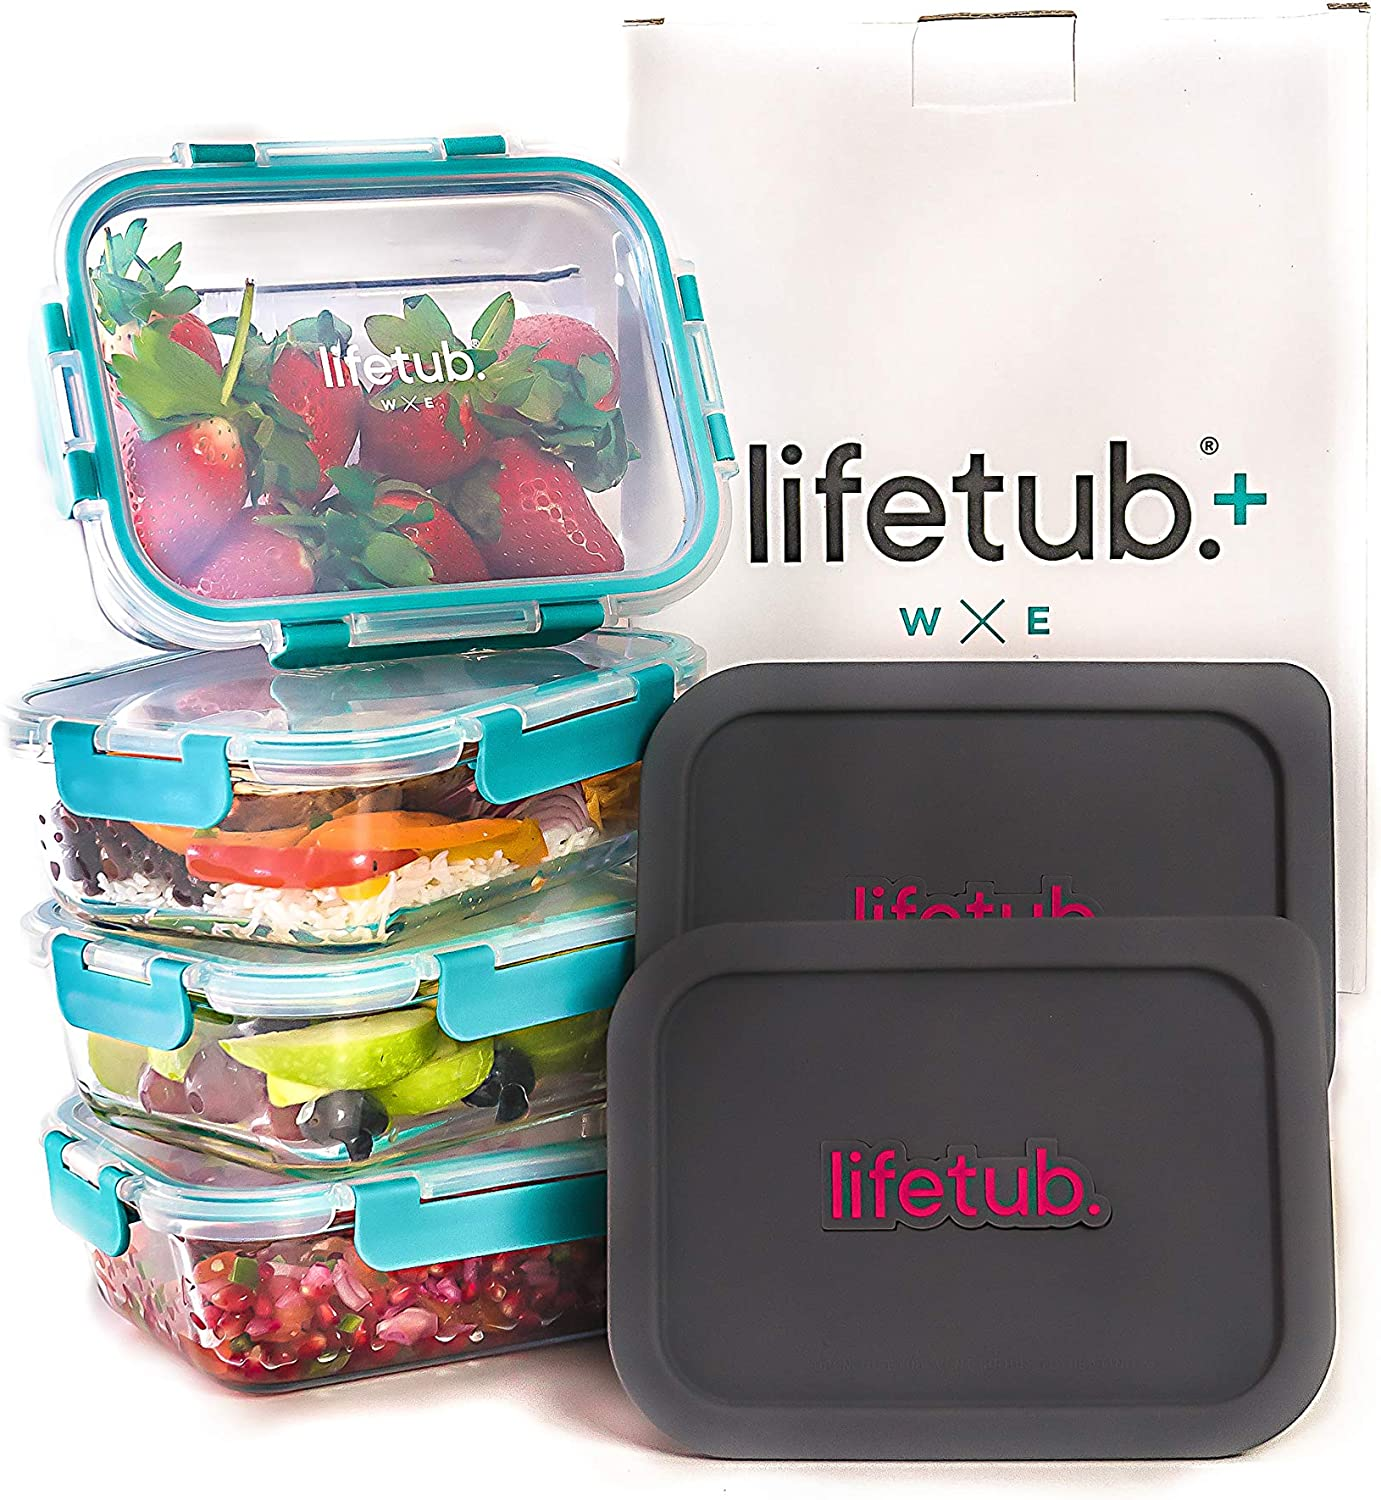 lifetub+ -Glass Food Storage Containers with Lids Airtight, Large Glass Meal Prep Containers 10 Pack (4x35oz) (4x leakproof lids) 2x Reheat Silicone Lids -, BPA Free Food Storage Container Ovenproof